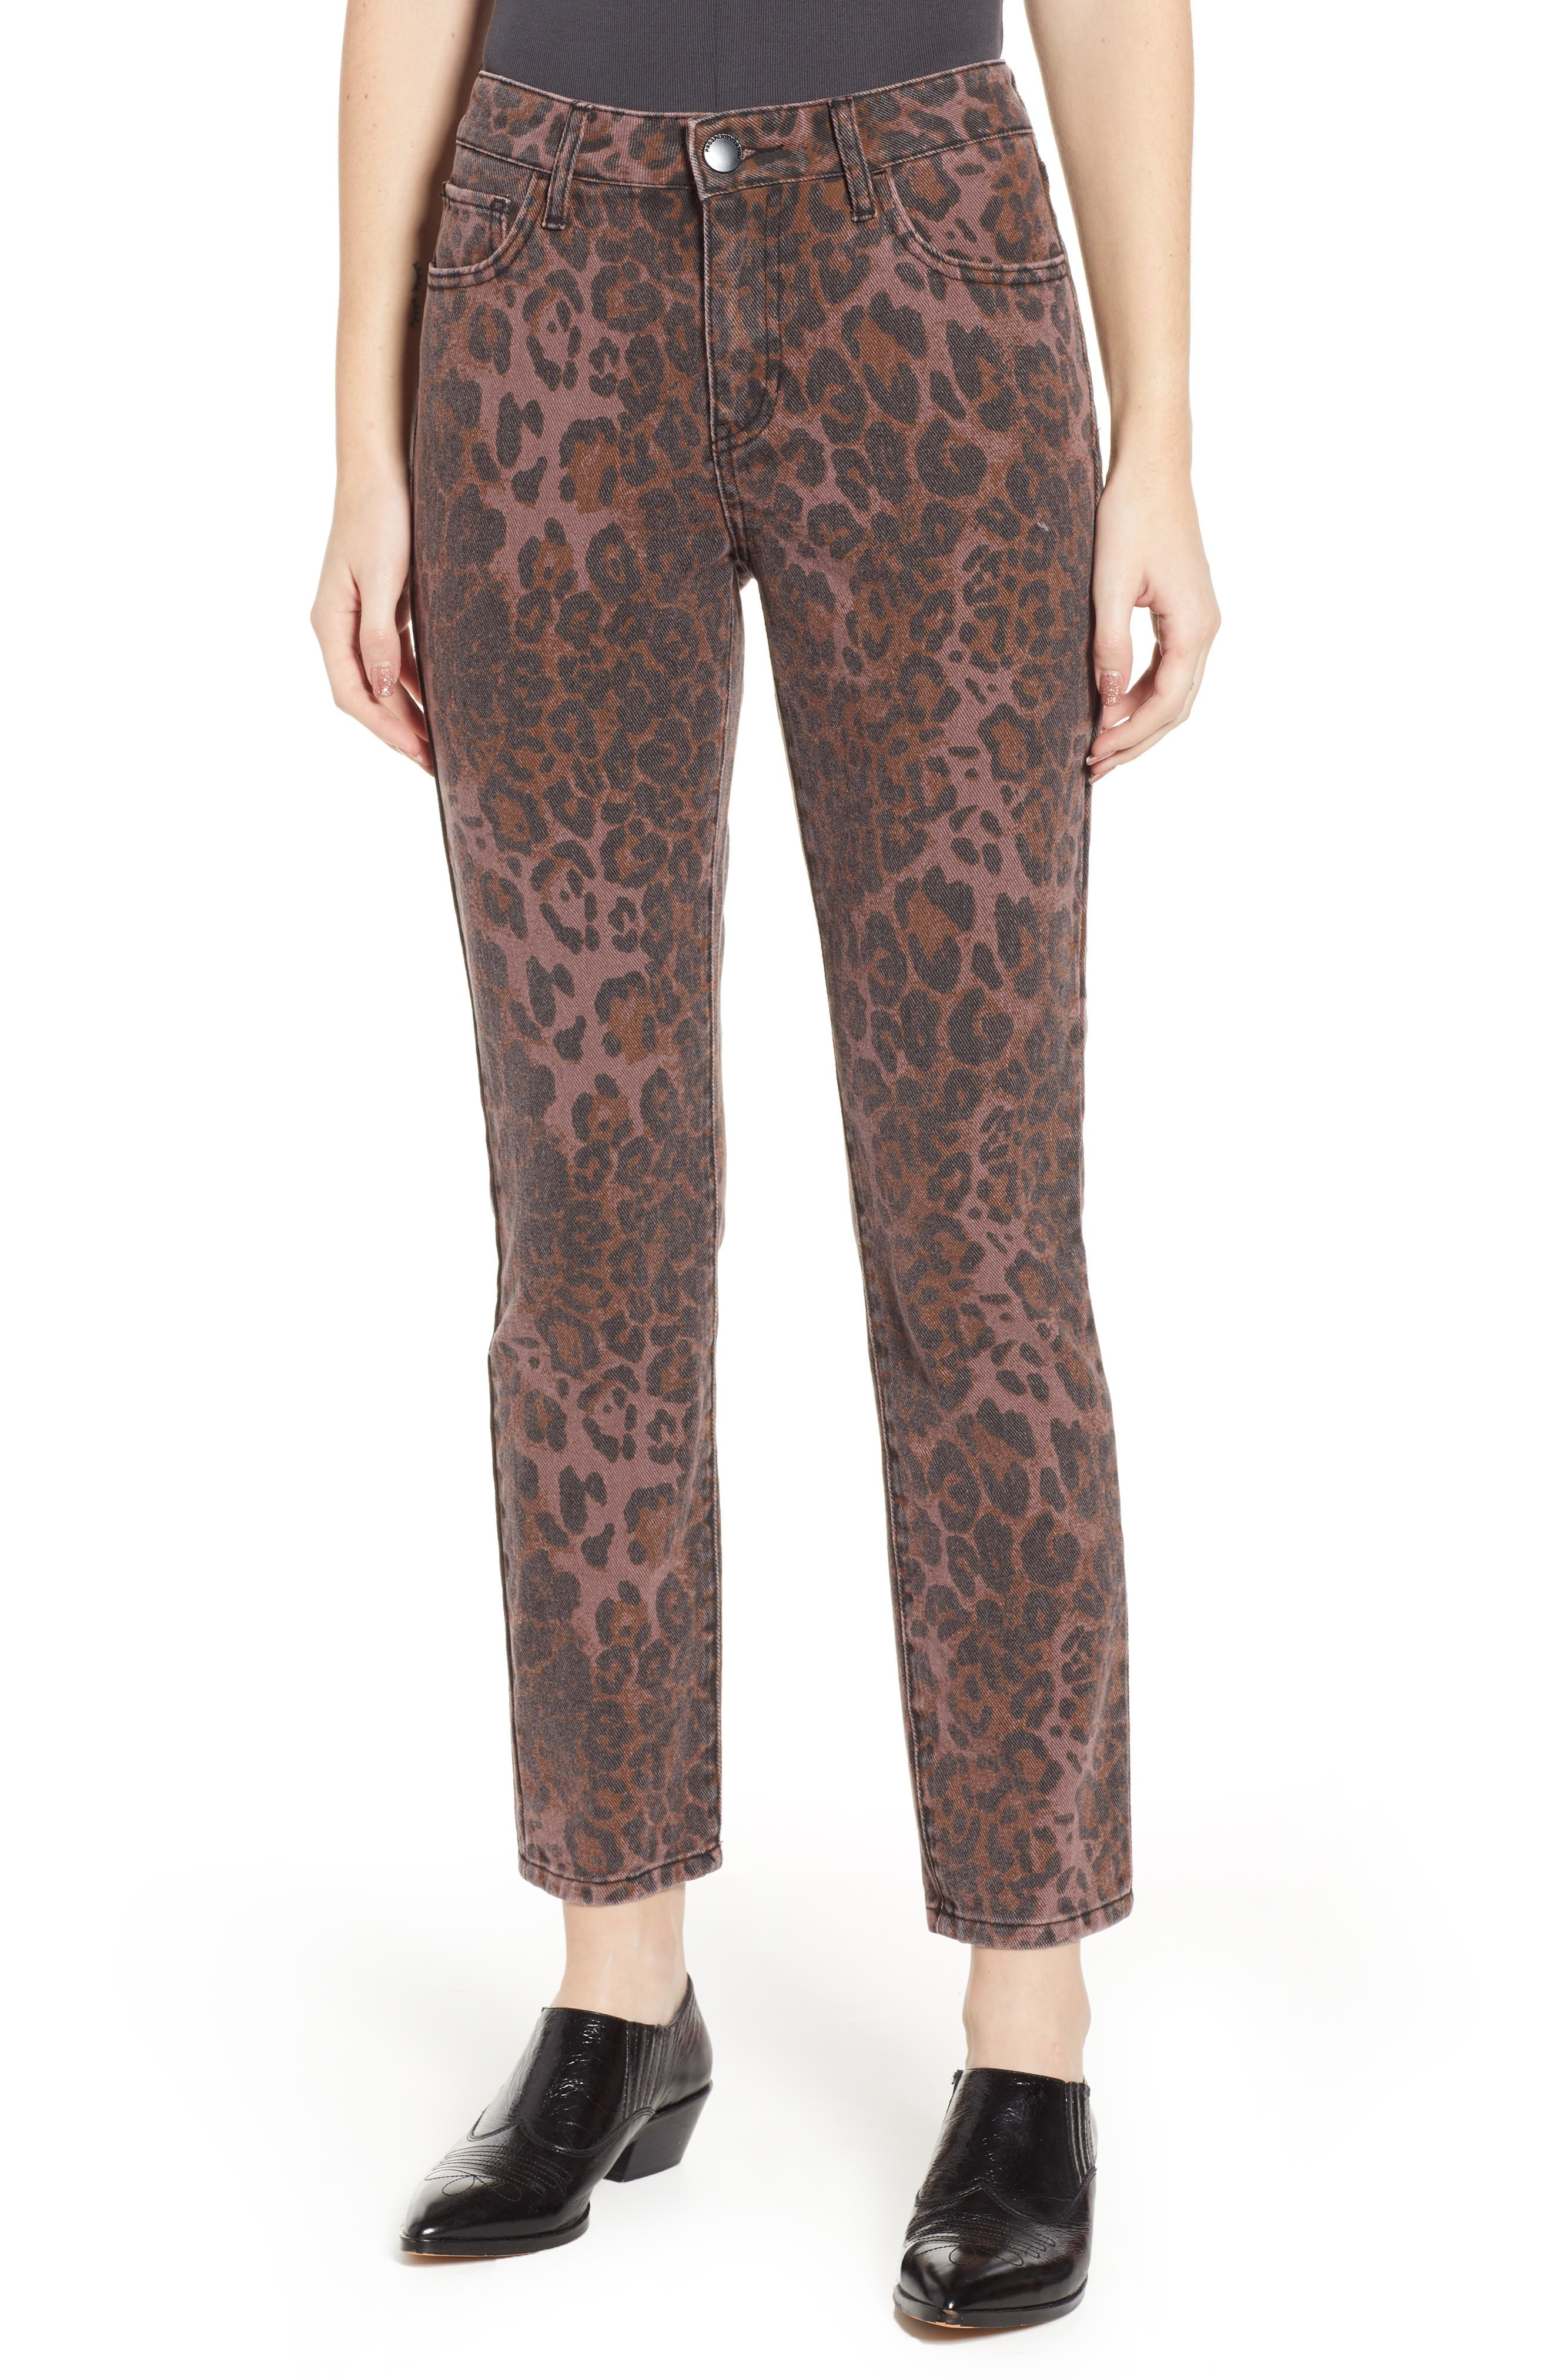 PROSPERITY DENIM Leopard Print Skinny Jeans, Main, color, LEOPARD